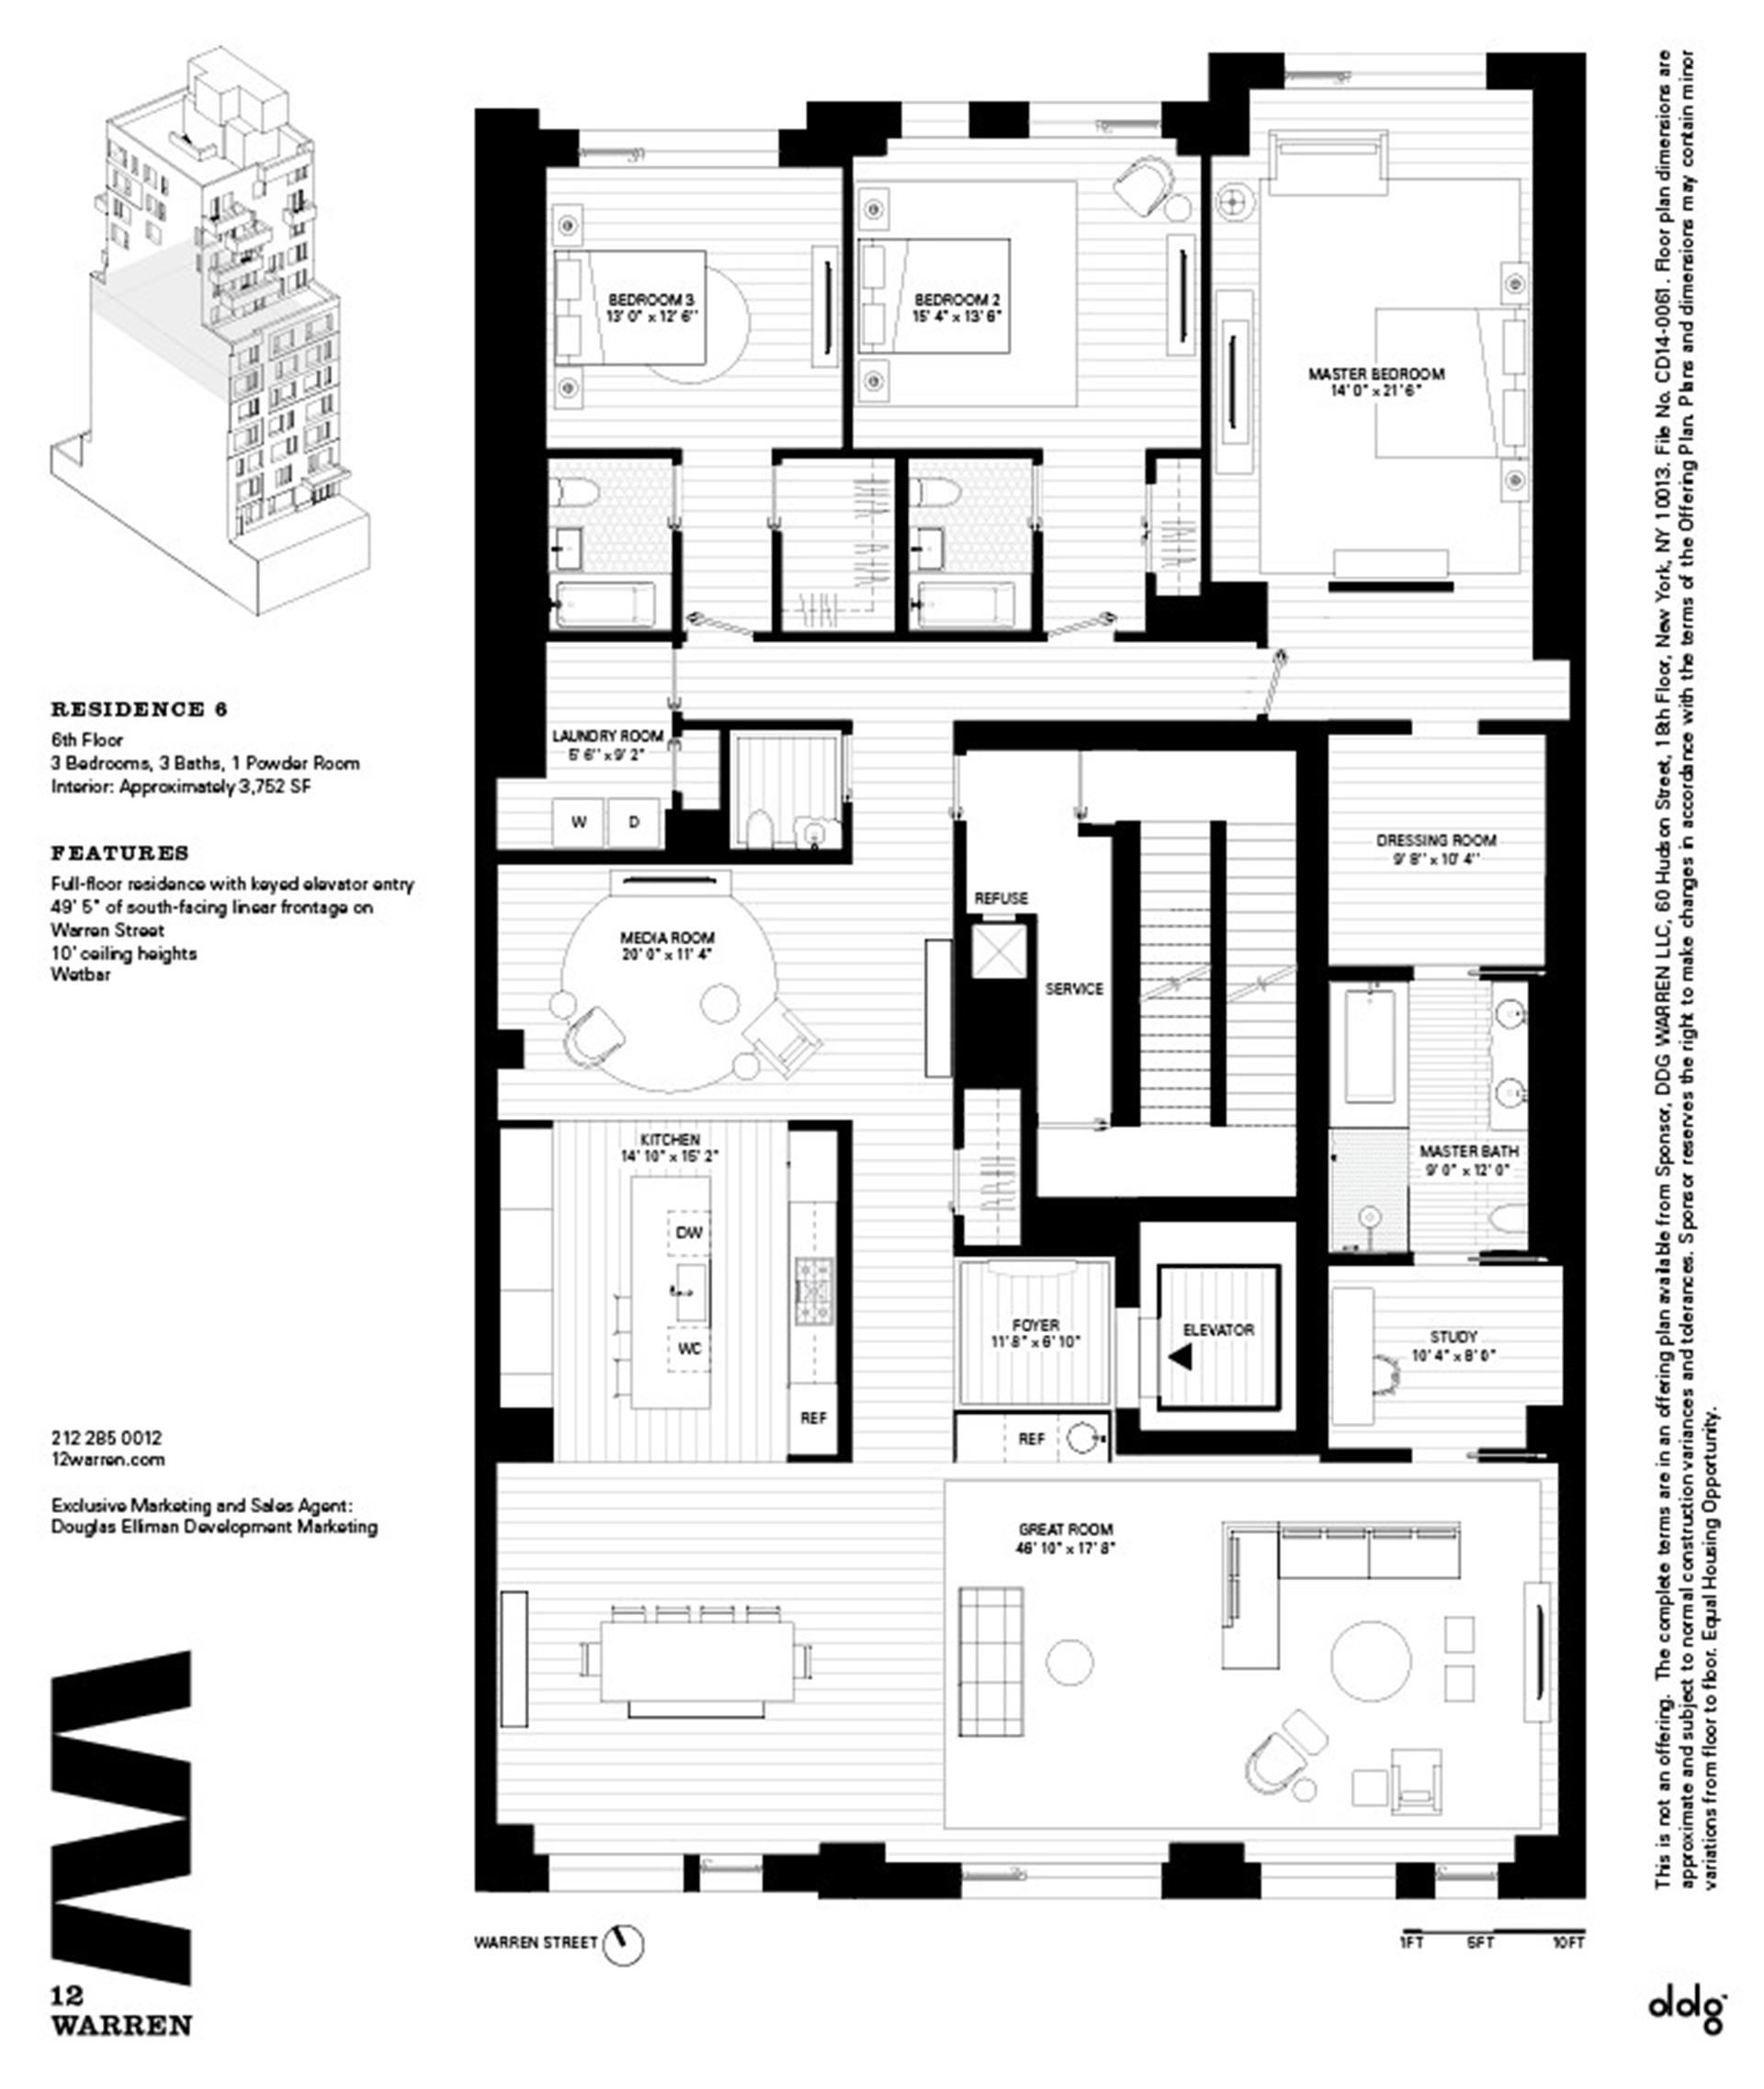 Floor plan of 12 Warren St, 6 - TriBeCa, New York